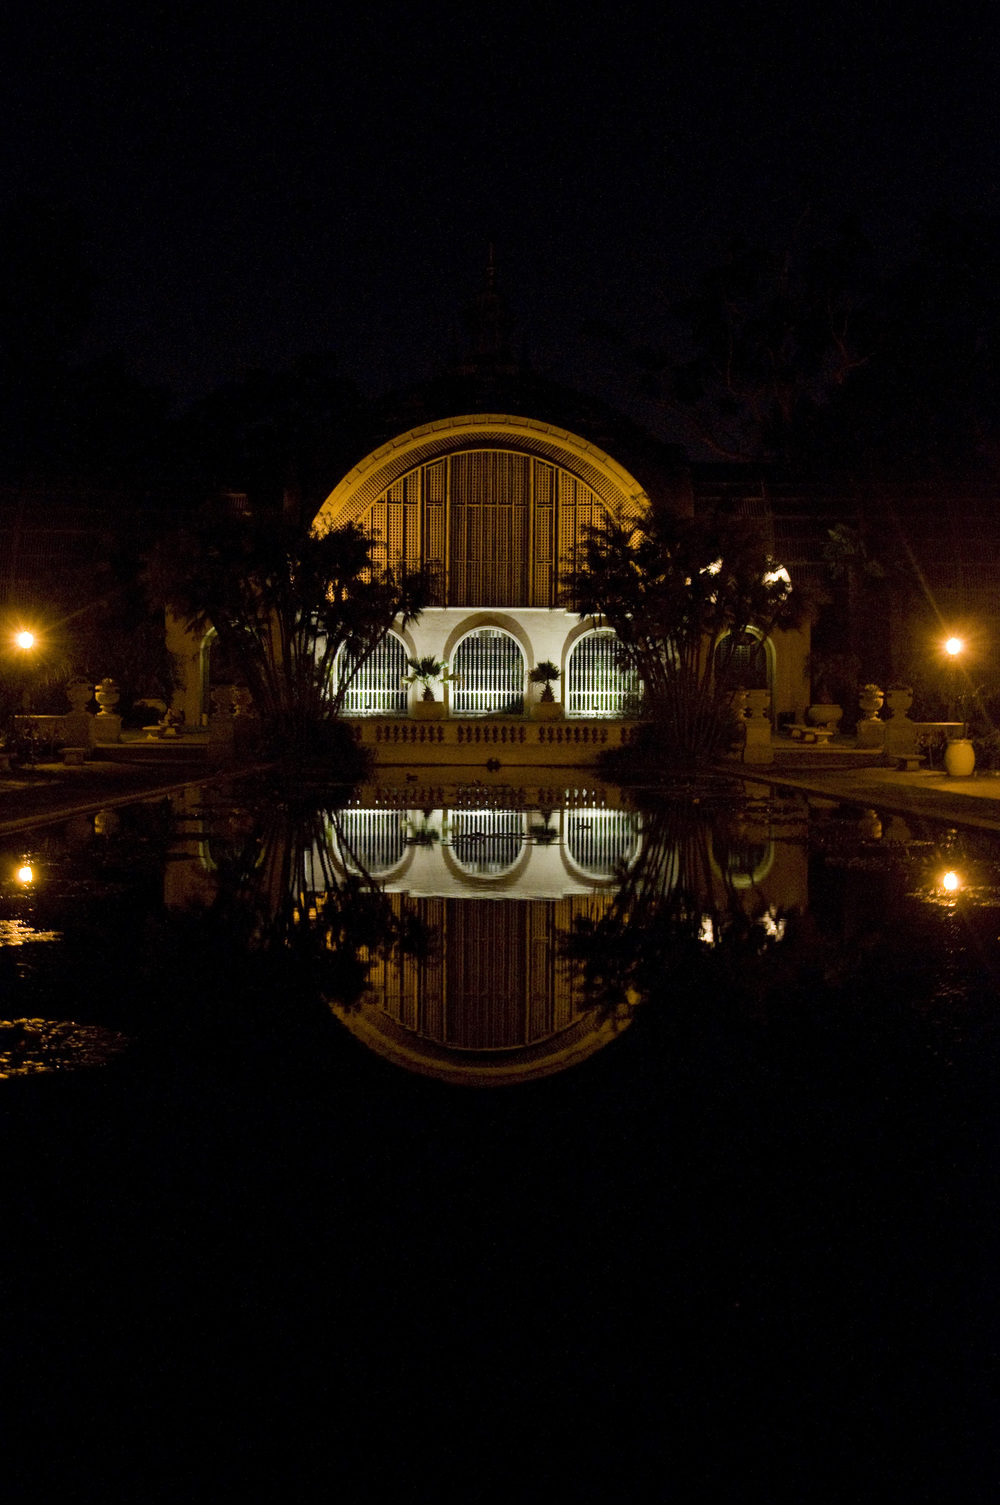 Botanical Hall at Balboa Park at night